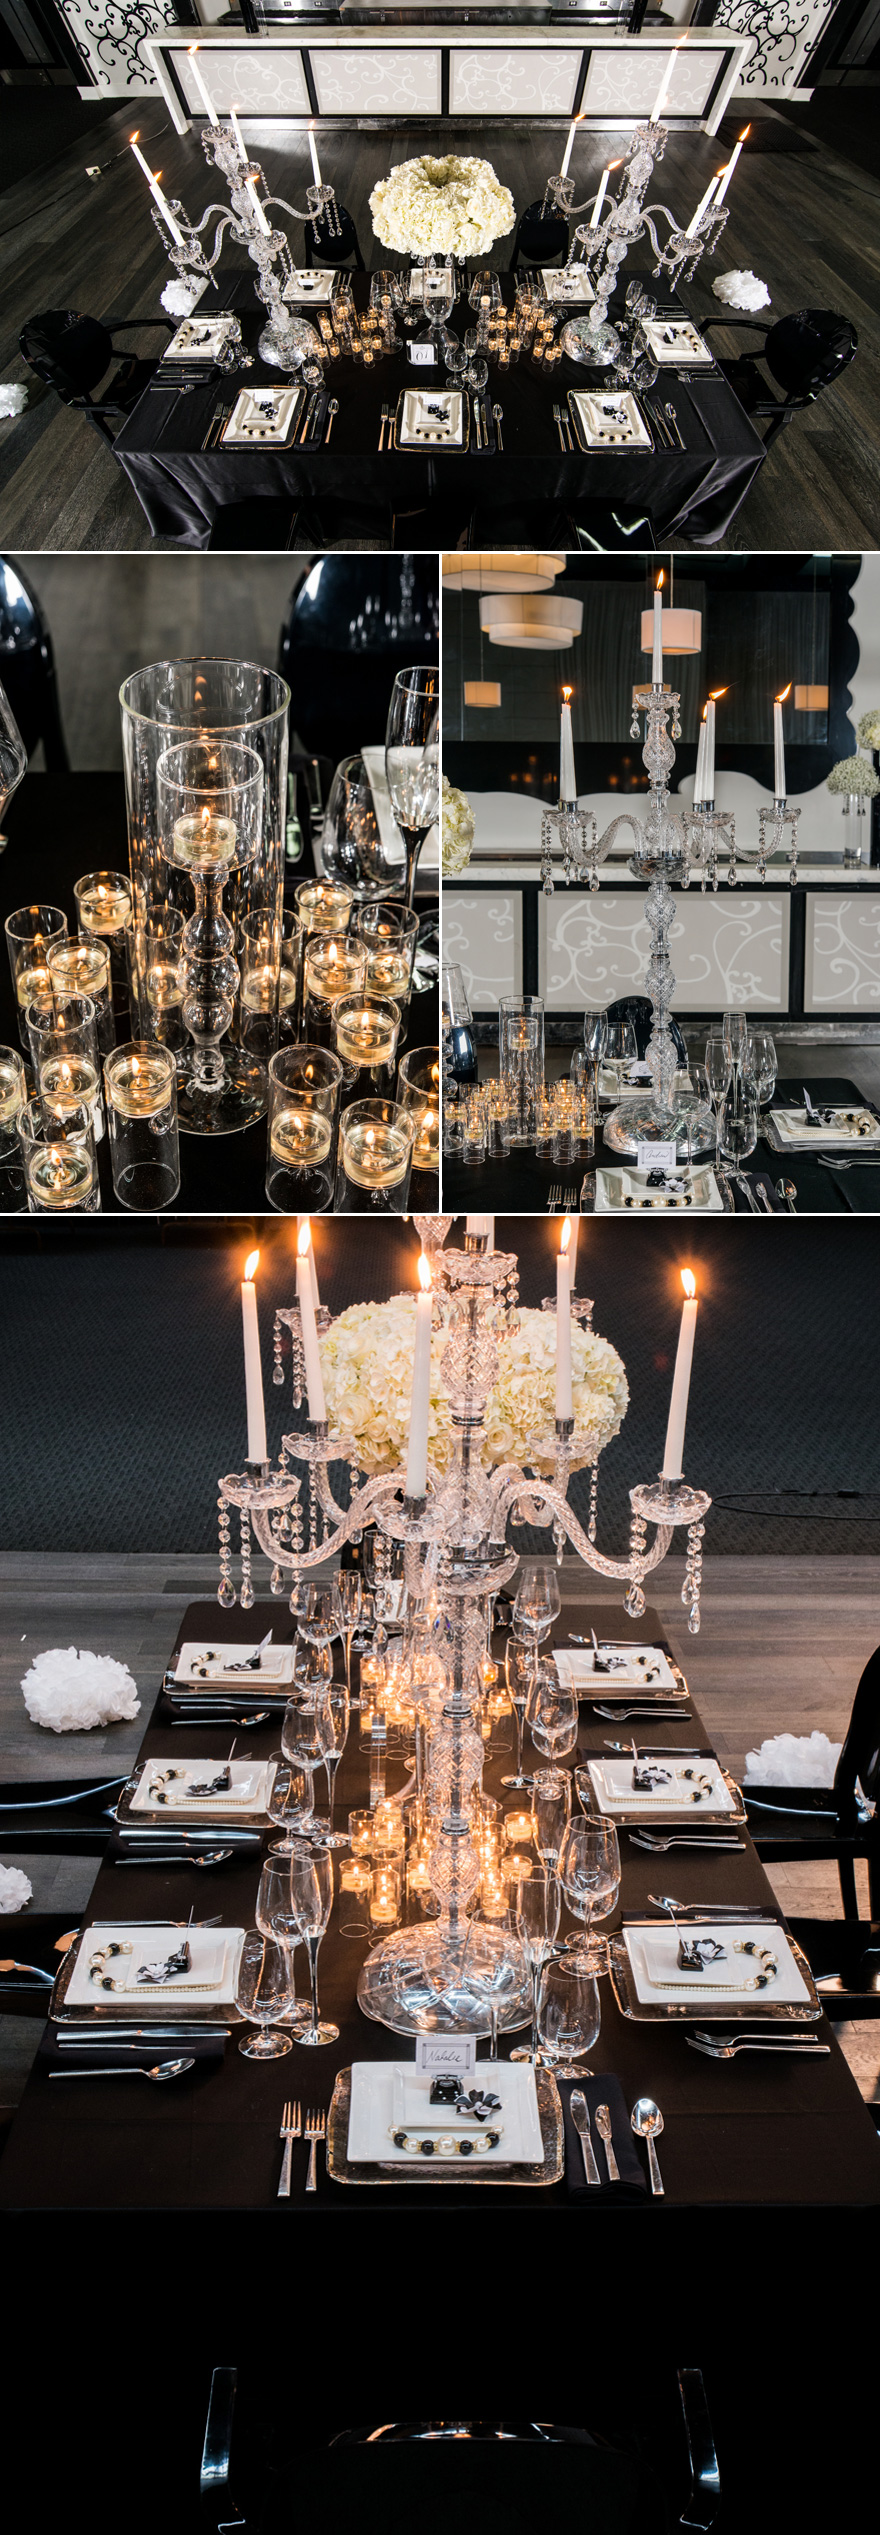 Crystal Glass Candelabra Glamorous Luxury Wedding Decor | Confetti.co.uk